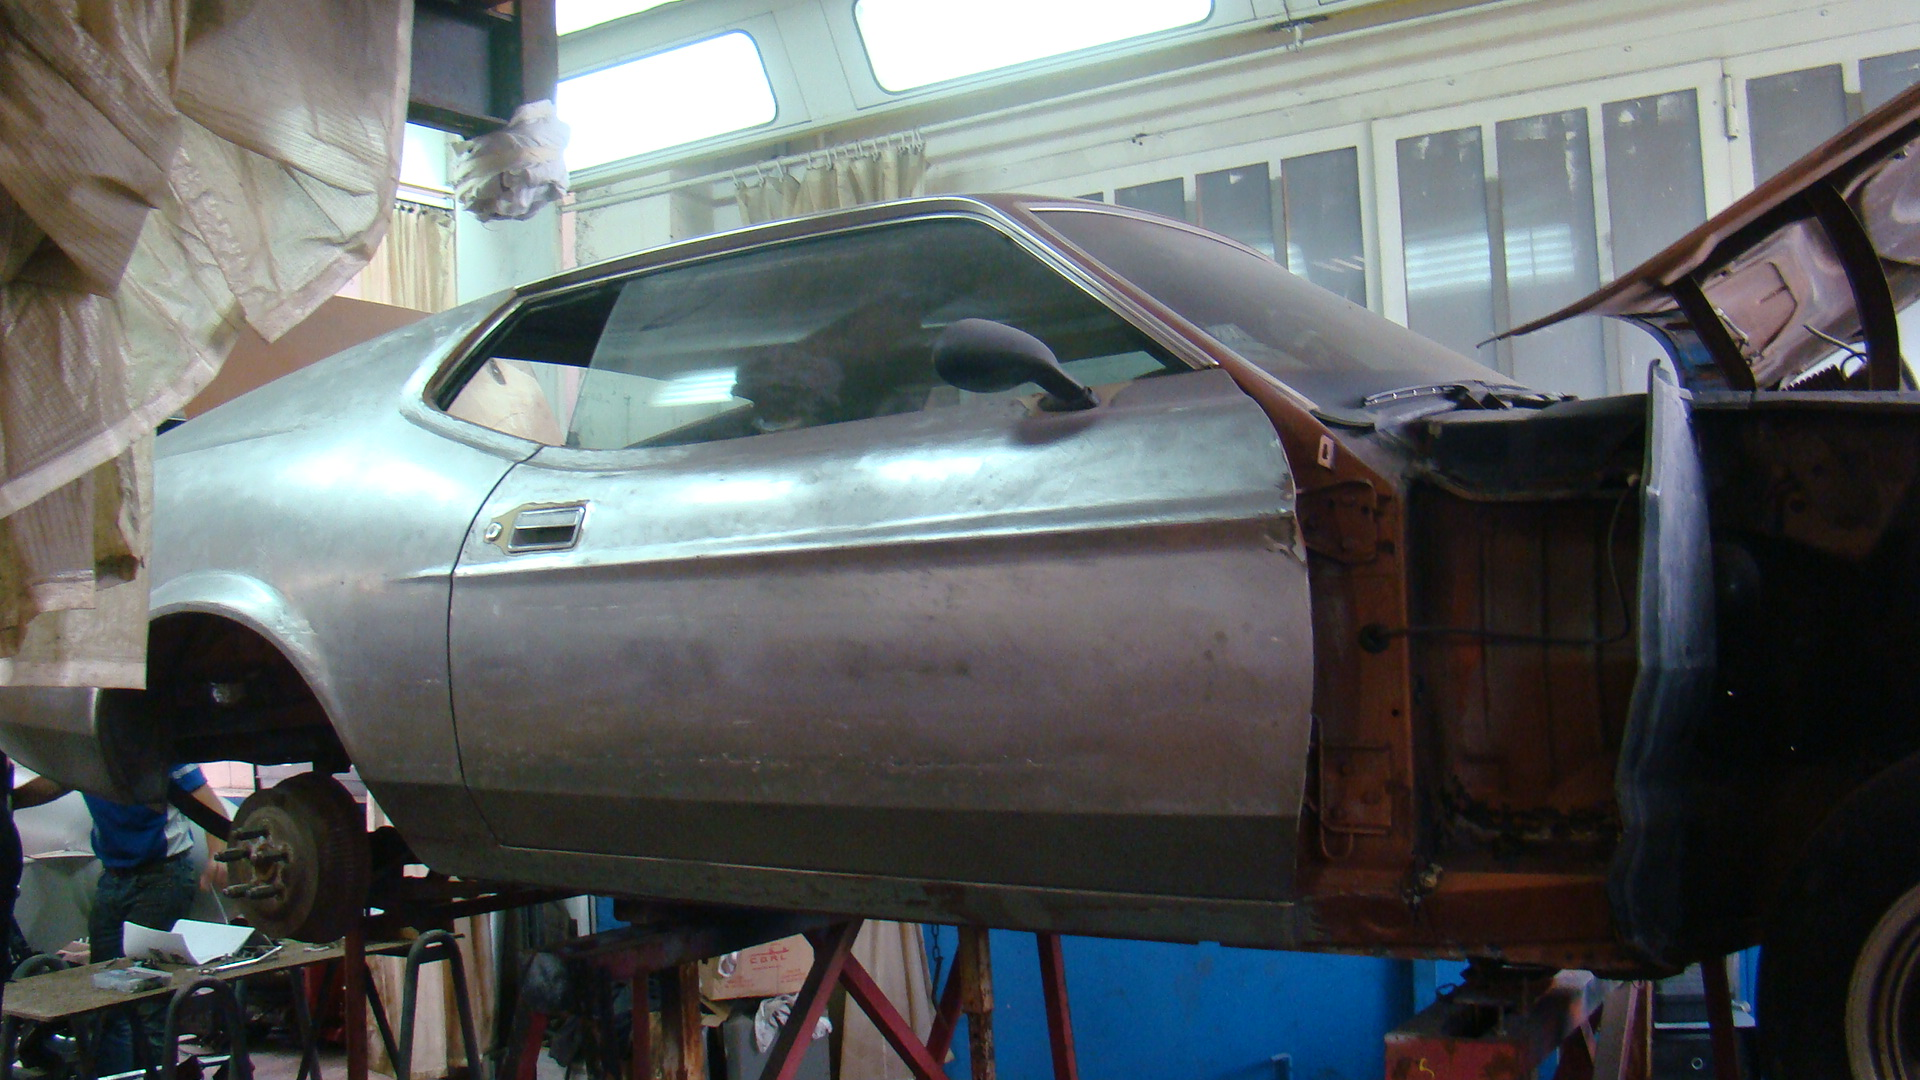 1973 Ford Mustang Mach 1 body mid-restoration France